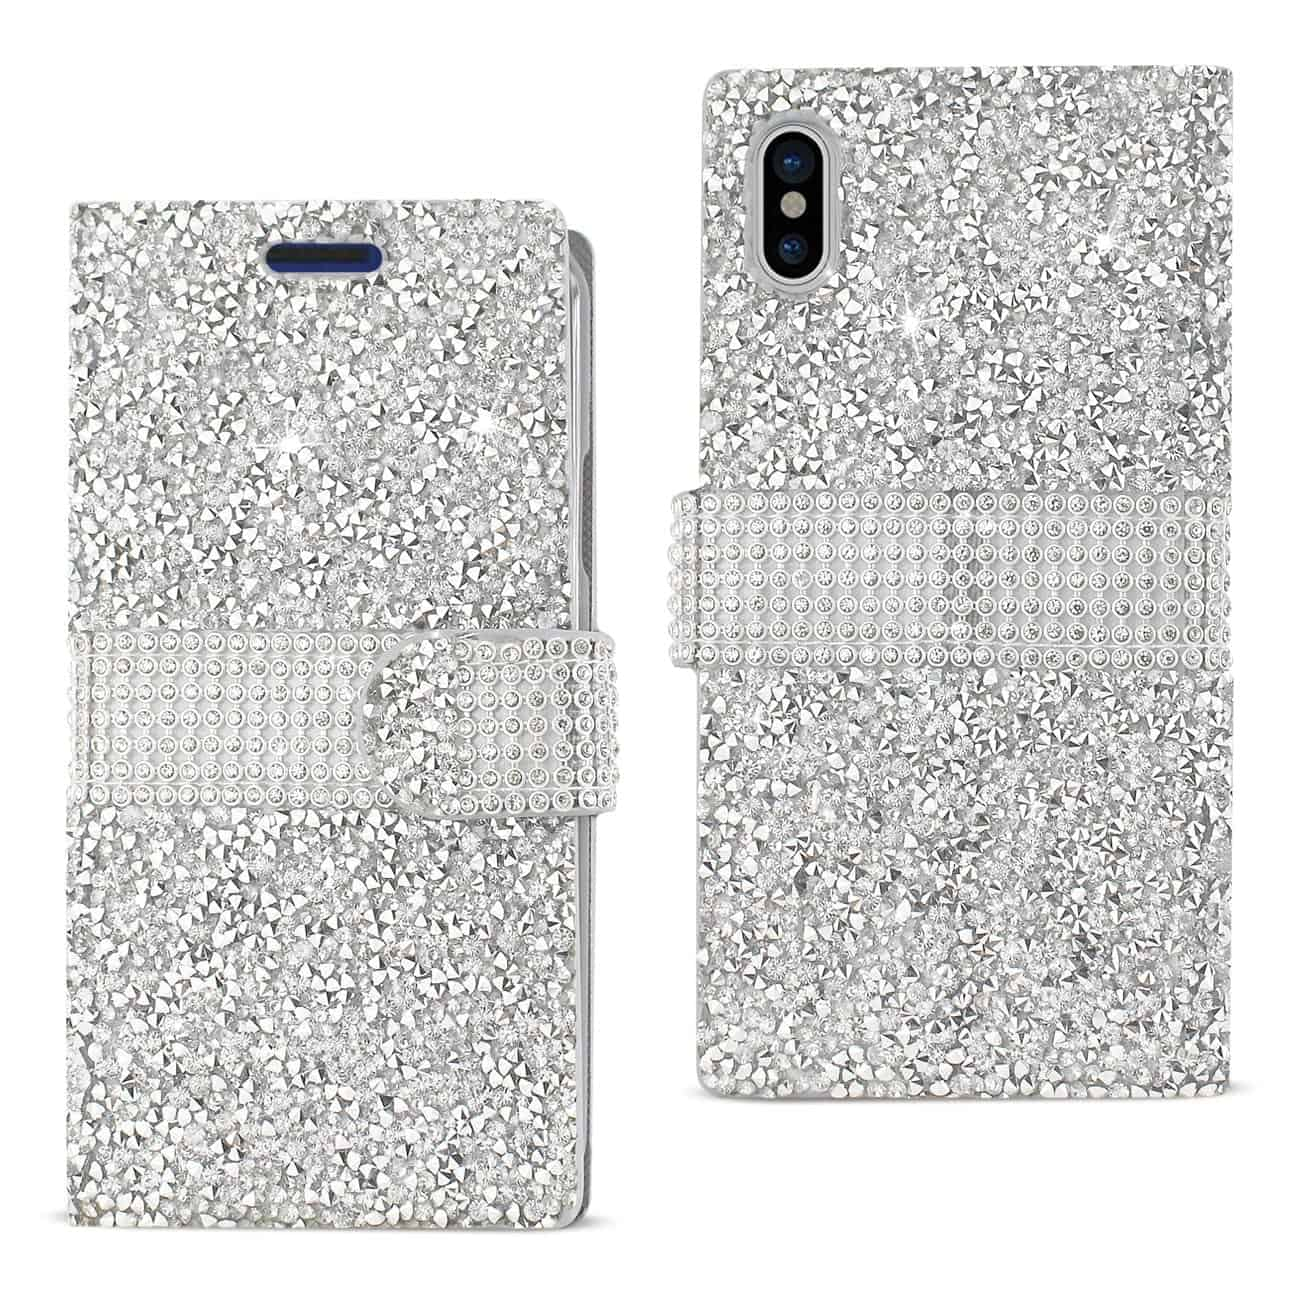 IPHONE X DIAMOND RHINESTONE WALLET CASE IN SILVER